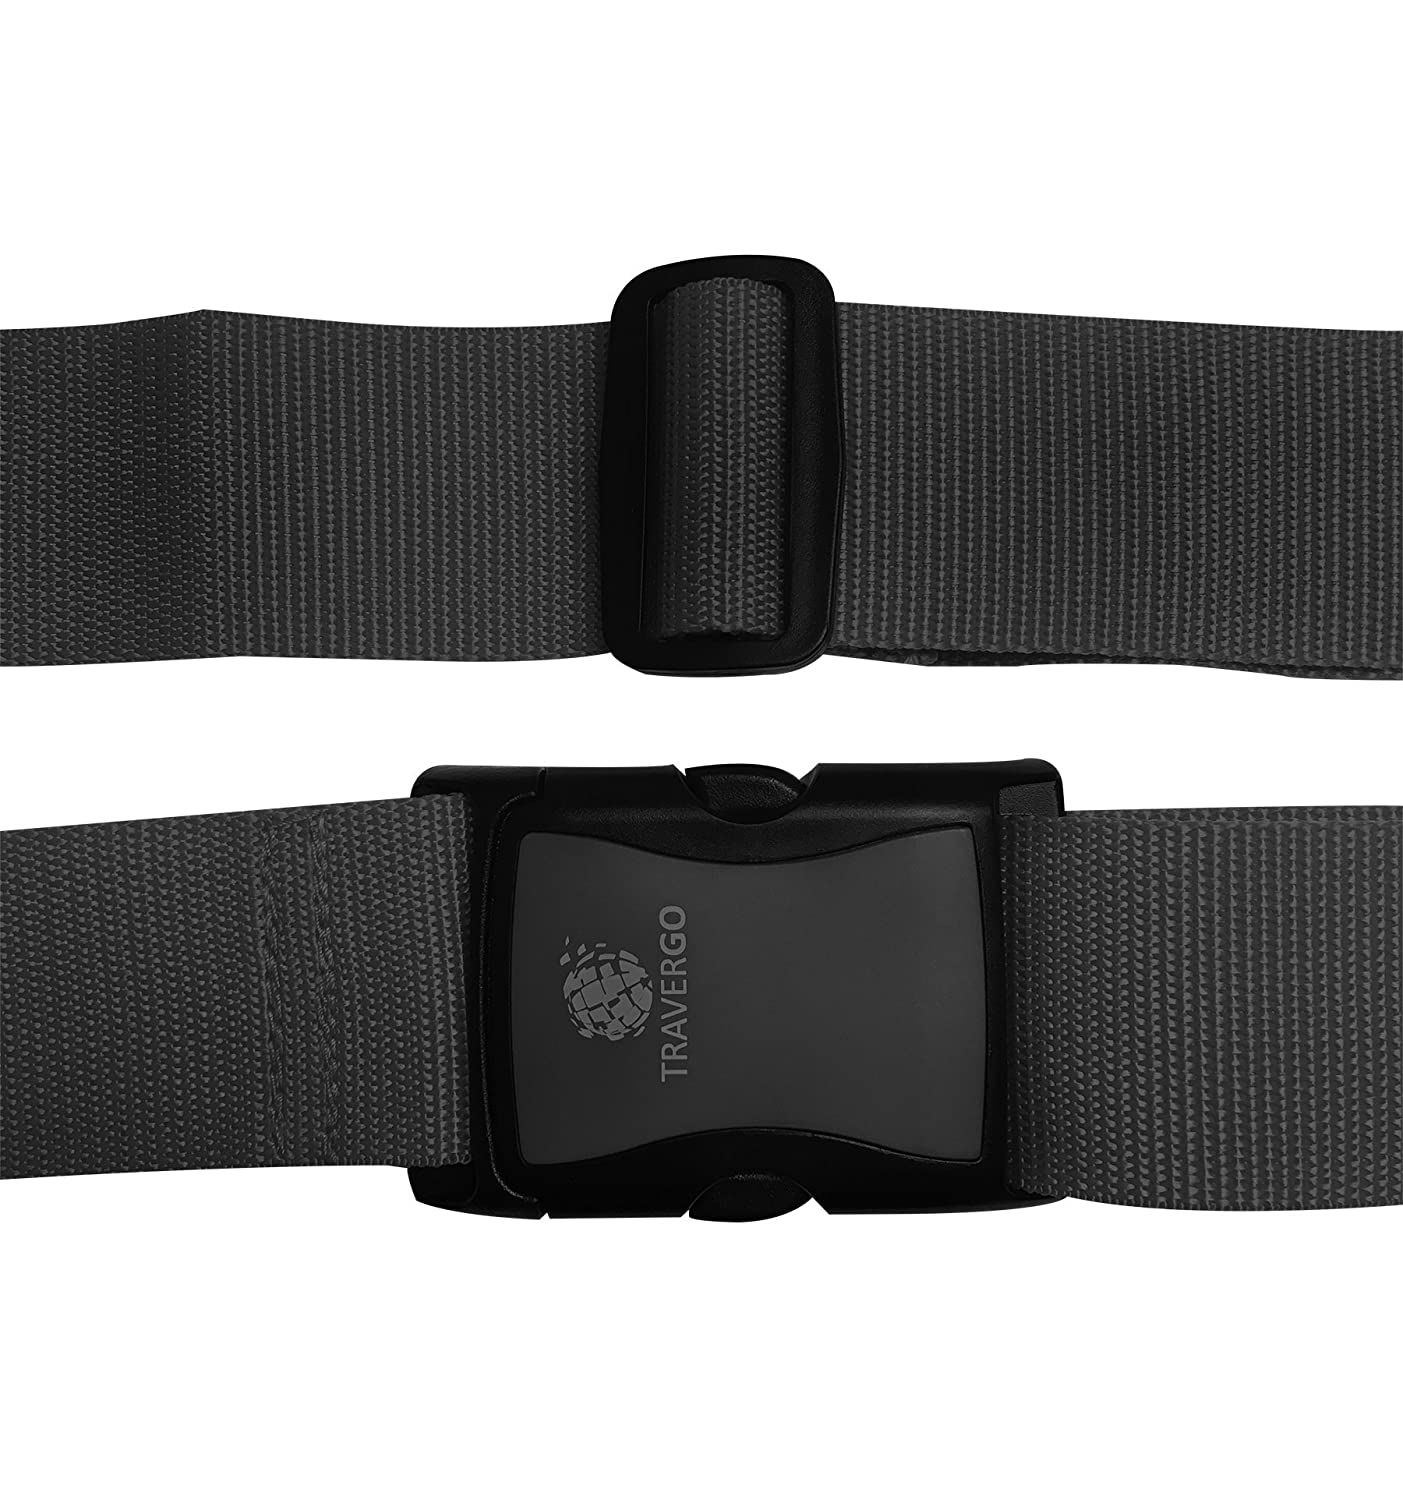 Black Go Green Power Solid Color Luggage Strap 0.36 Pound